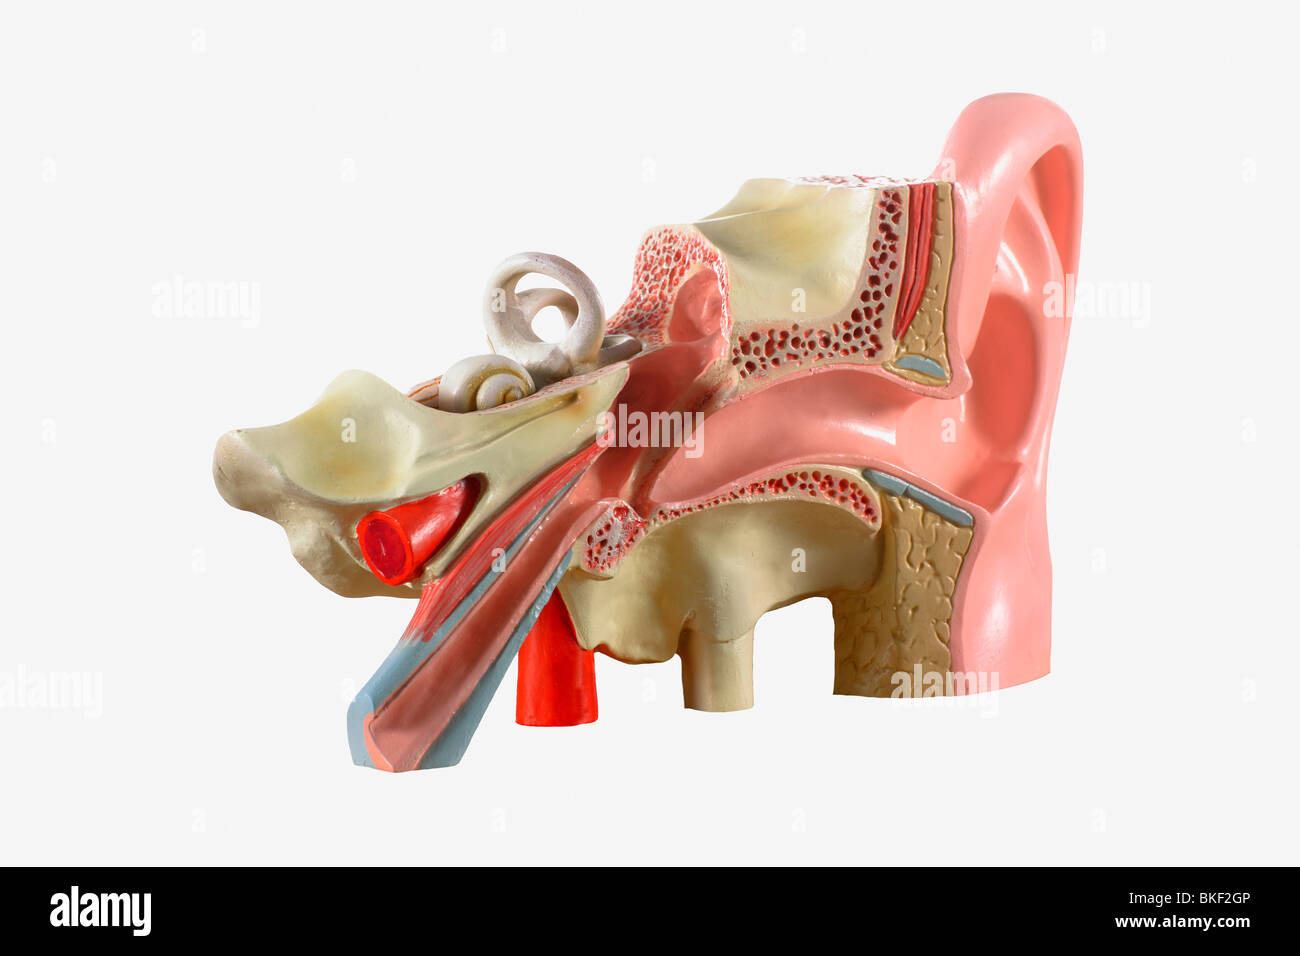 Anatomical Model Of The Middle Ear Stock Photos & Anatomical Model ...